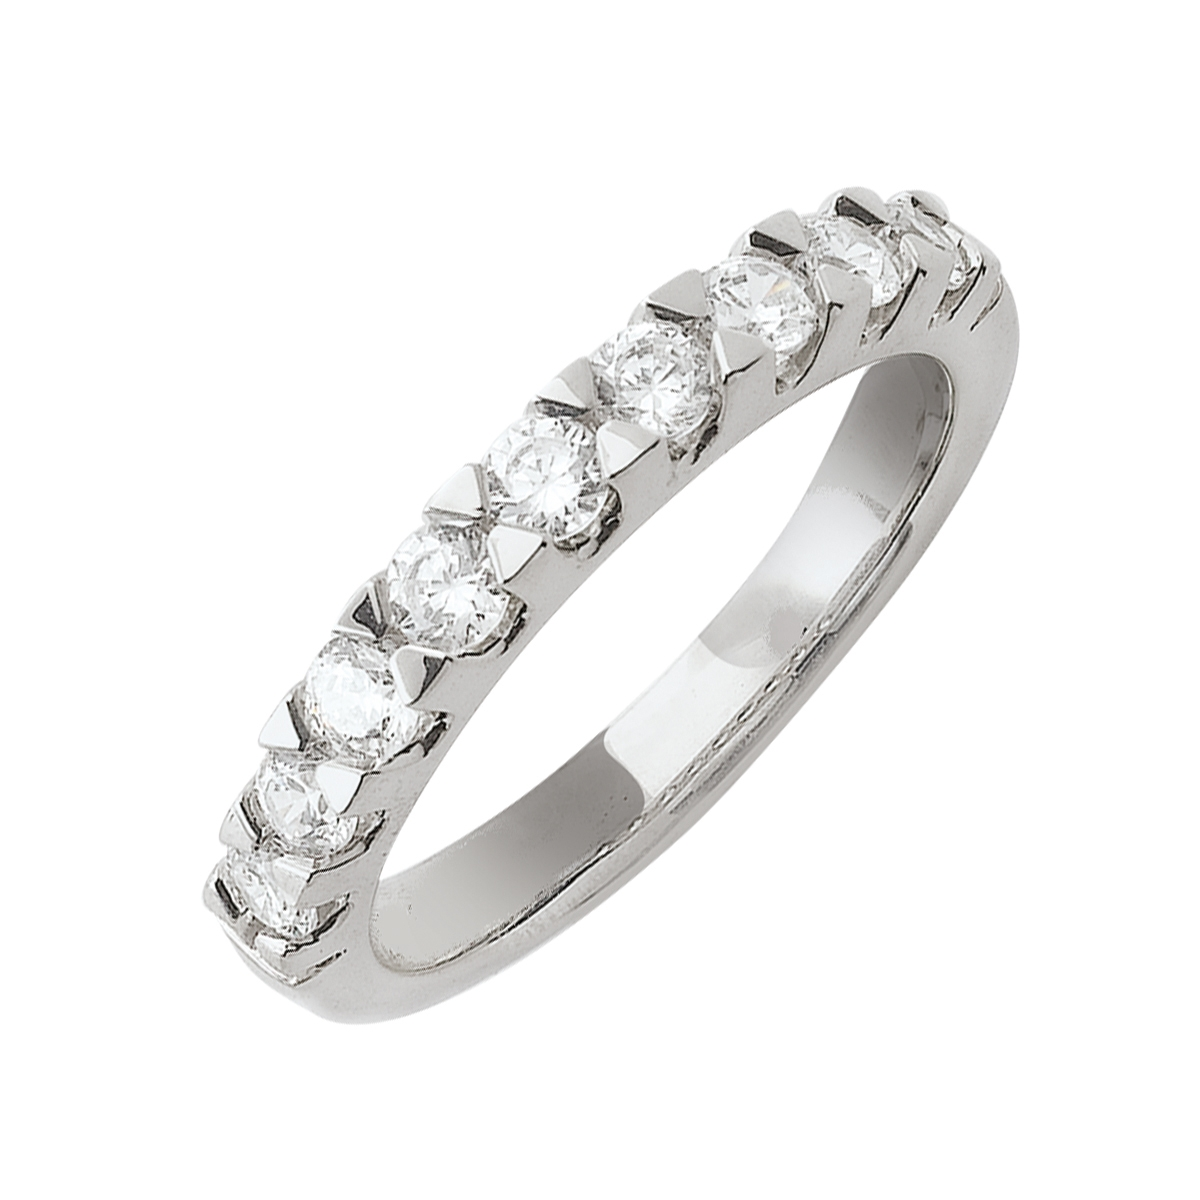 Alliance demi-tour serti griffes or blanc - Diamants synthétiques 0,75 carat